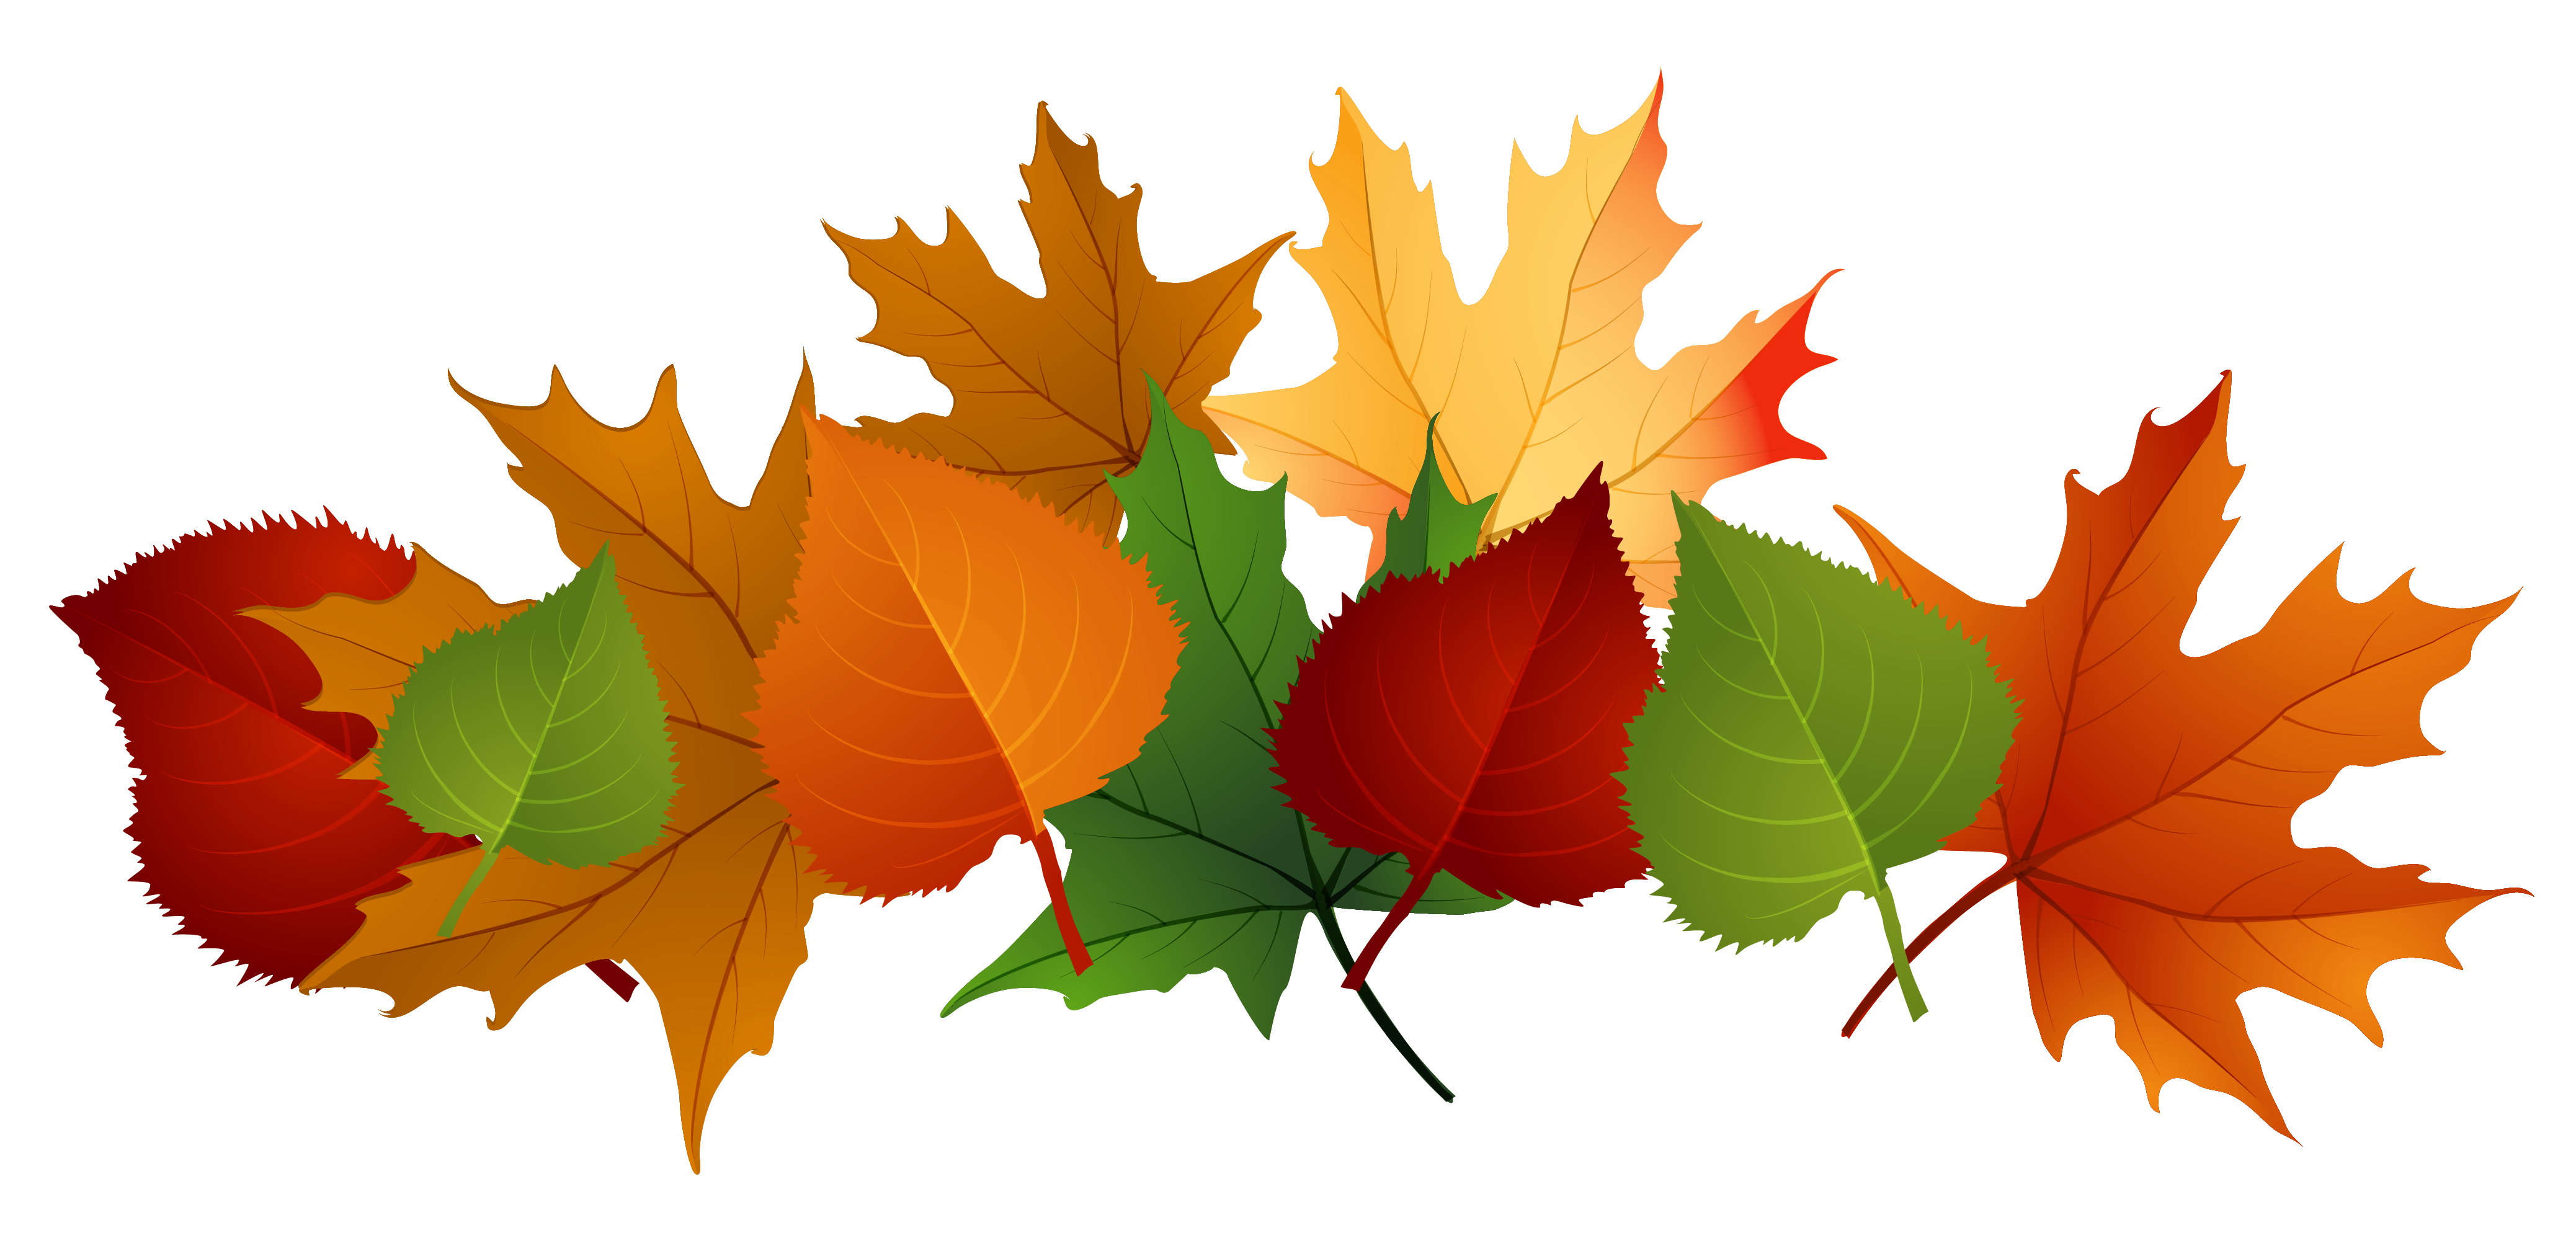 4153x1988 Fall Leaves Fall Clip Art Autumn Clip Art Leaves Clip Art Clipart